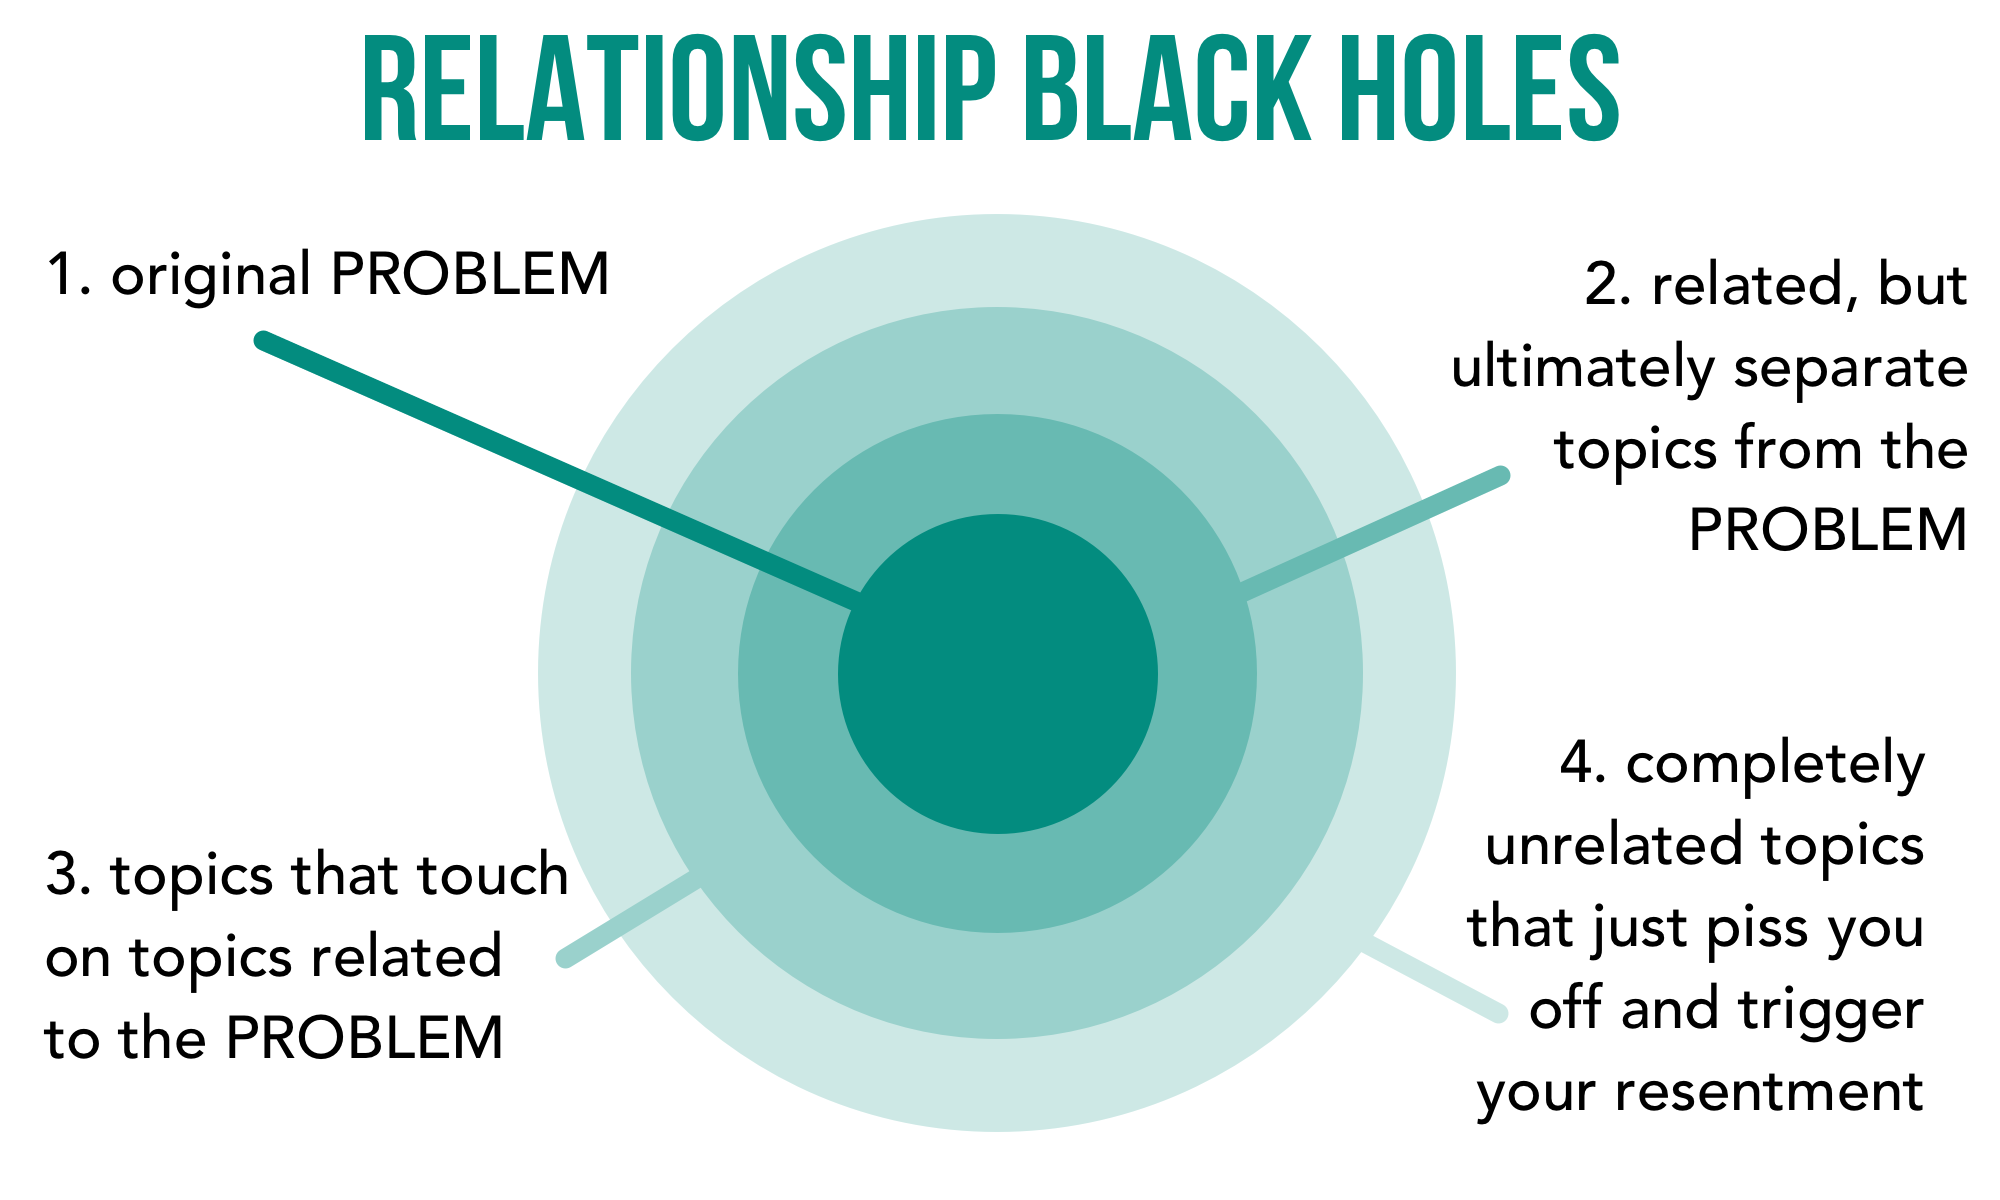 Relationship Black Holes